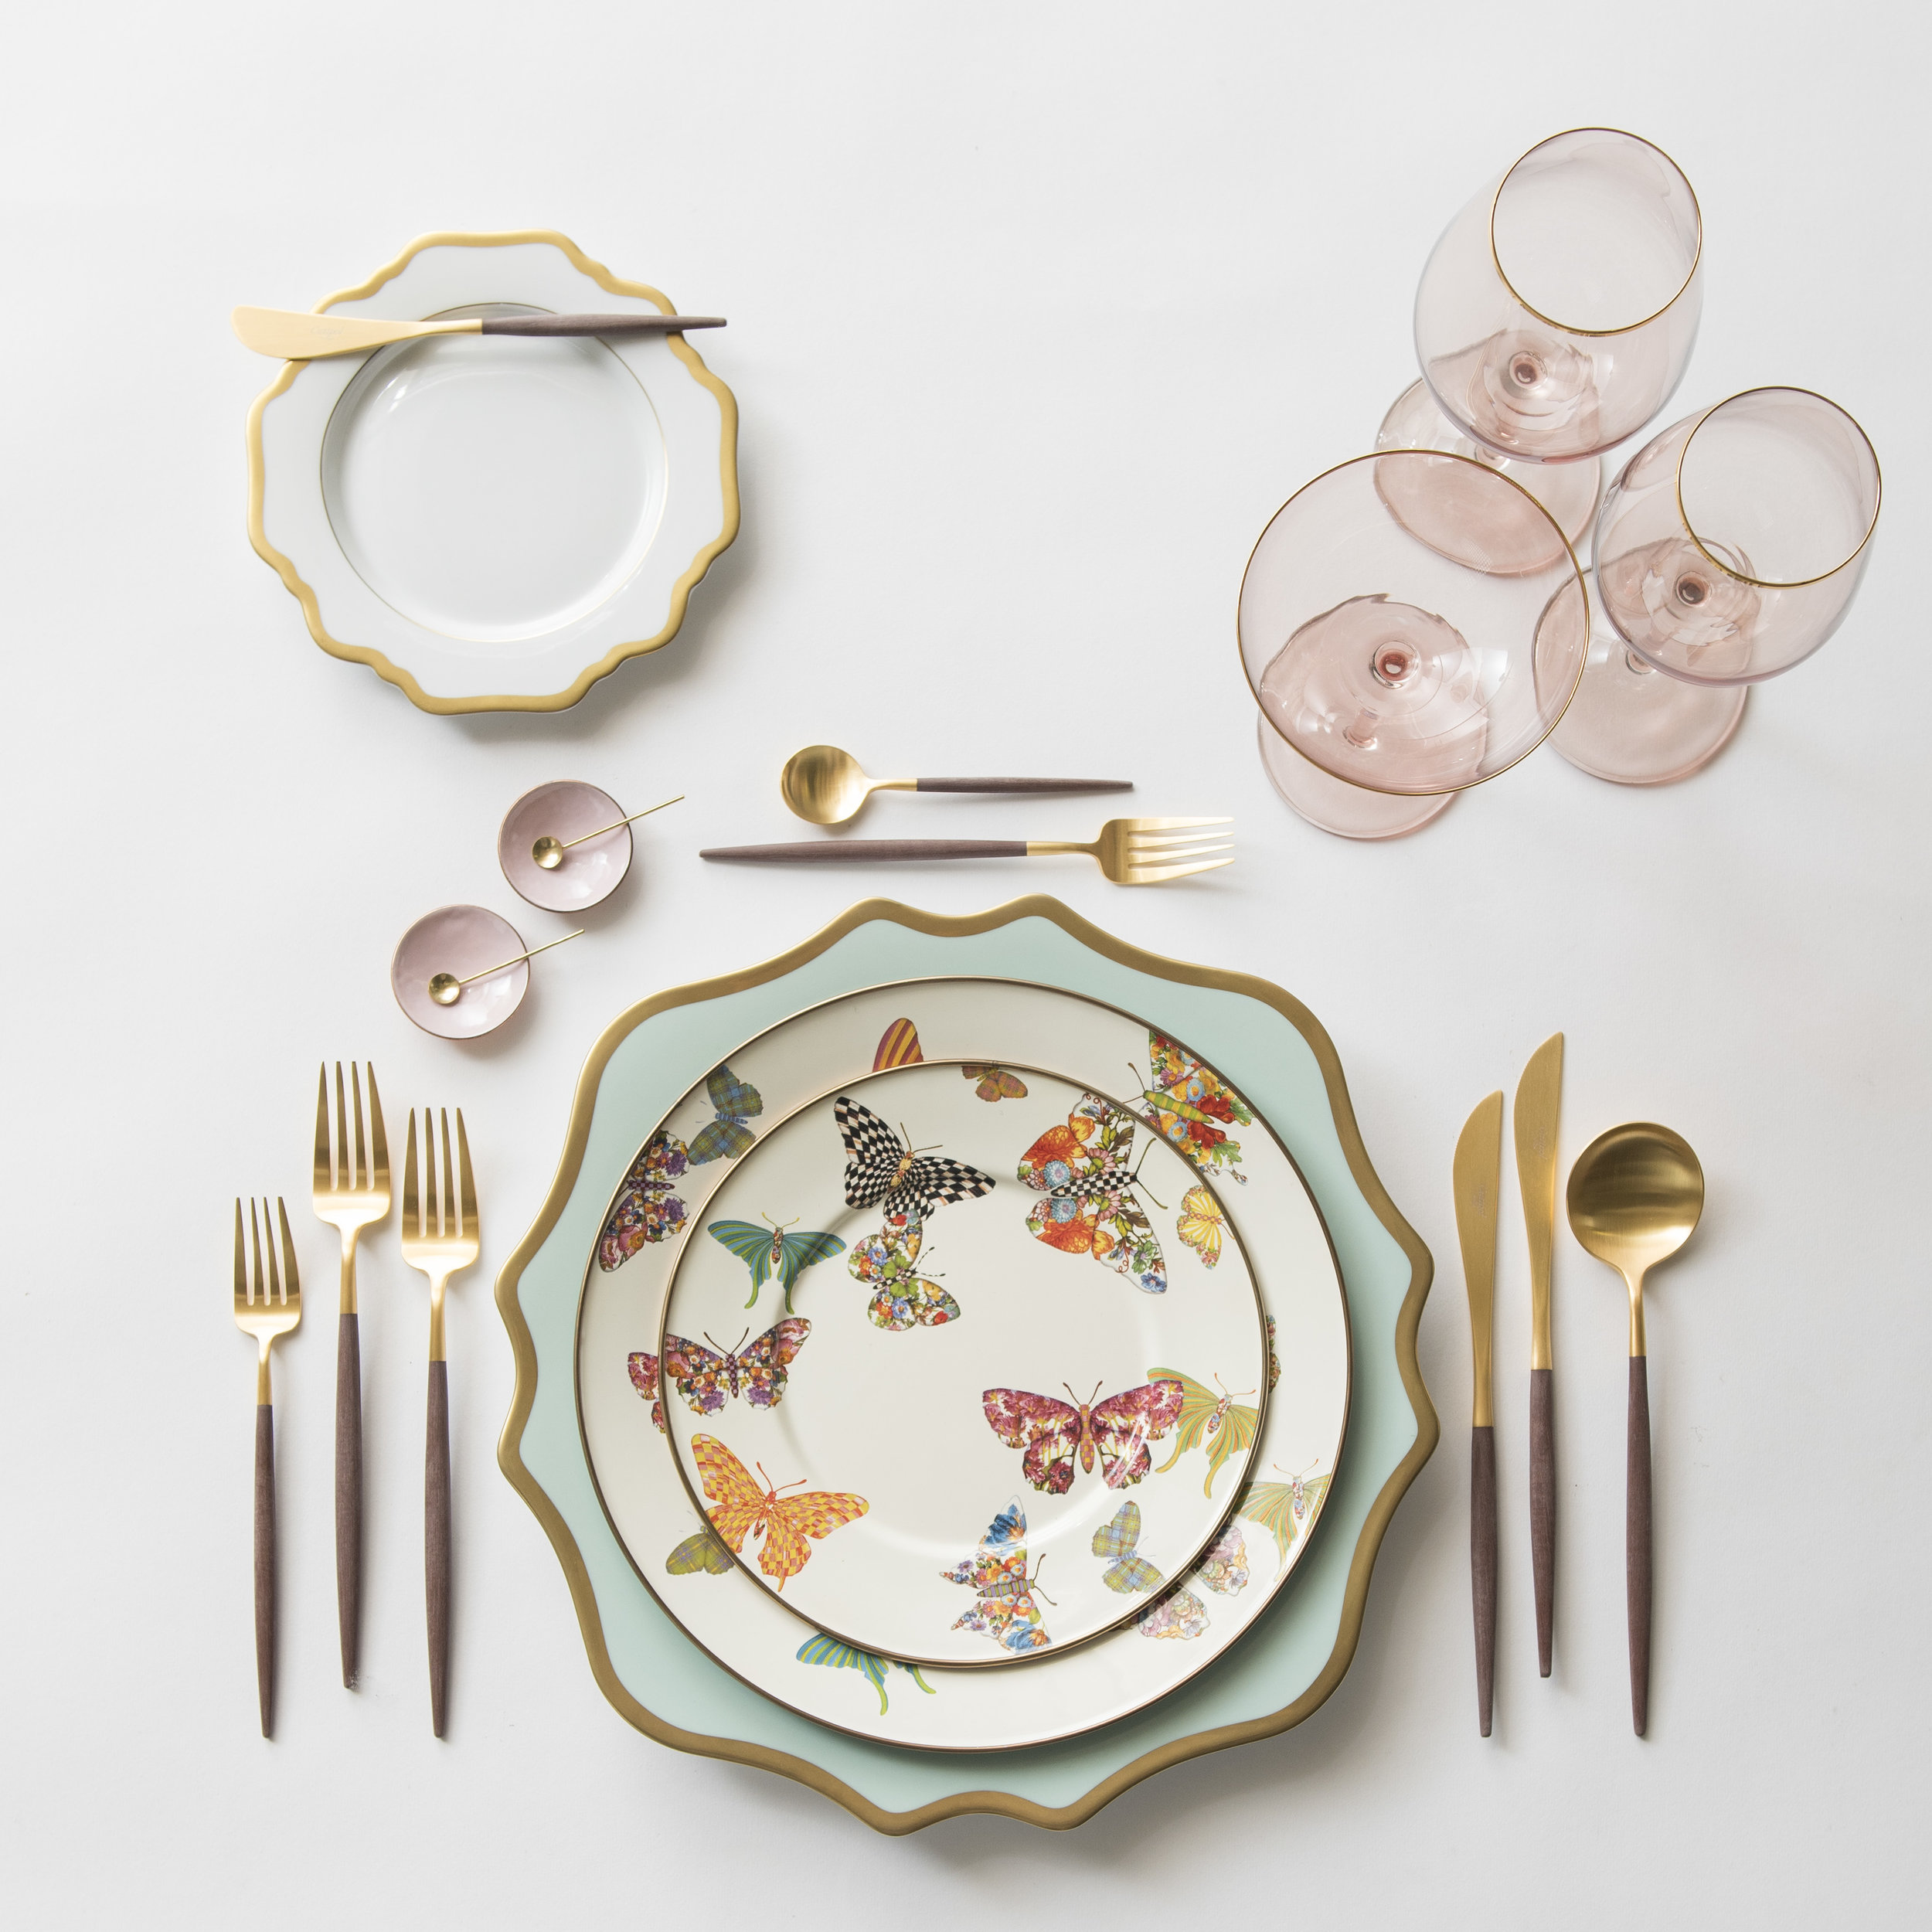 RENT: Anna Weatherley Chargers in Aqua Sky/Gold + MacKenzie-Childs Butterfly Garden Collection + Anna Weatherley Dinnerware in White/Gold + Goa Flatware in Brushed 24k Gold/Wood + Bella 24k Gold Rimmed Stemware in Blush + Pink Enamel Salt Cellars + Tiny Gold Spoons   SHOP: Anna Weatherley Chargers in Aqua Sky/Gold + Anna Weatherley Dinnerware in White/Gold + Goa Flatware in Brushed 24k Gold/Wood + Bella 24k Gold Rimmed Stemware in Blush + Pink Enamel Salt Cellars + Tiny Gold Spoons